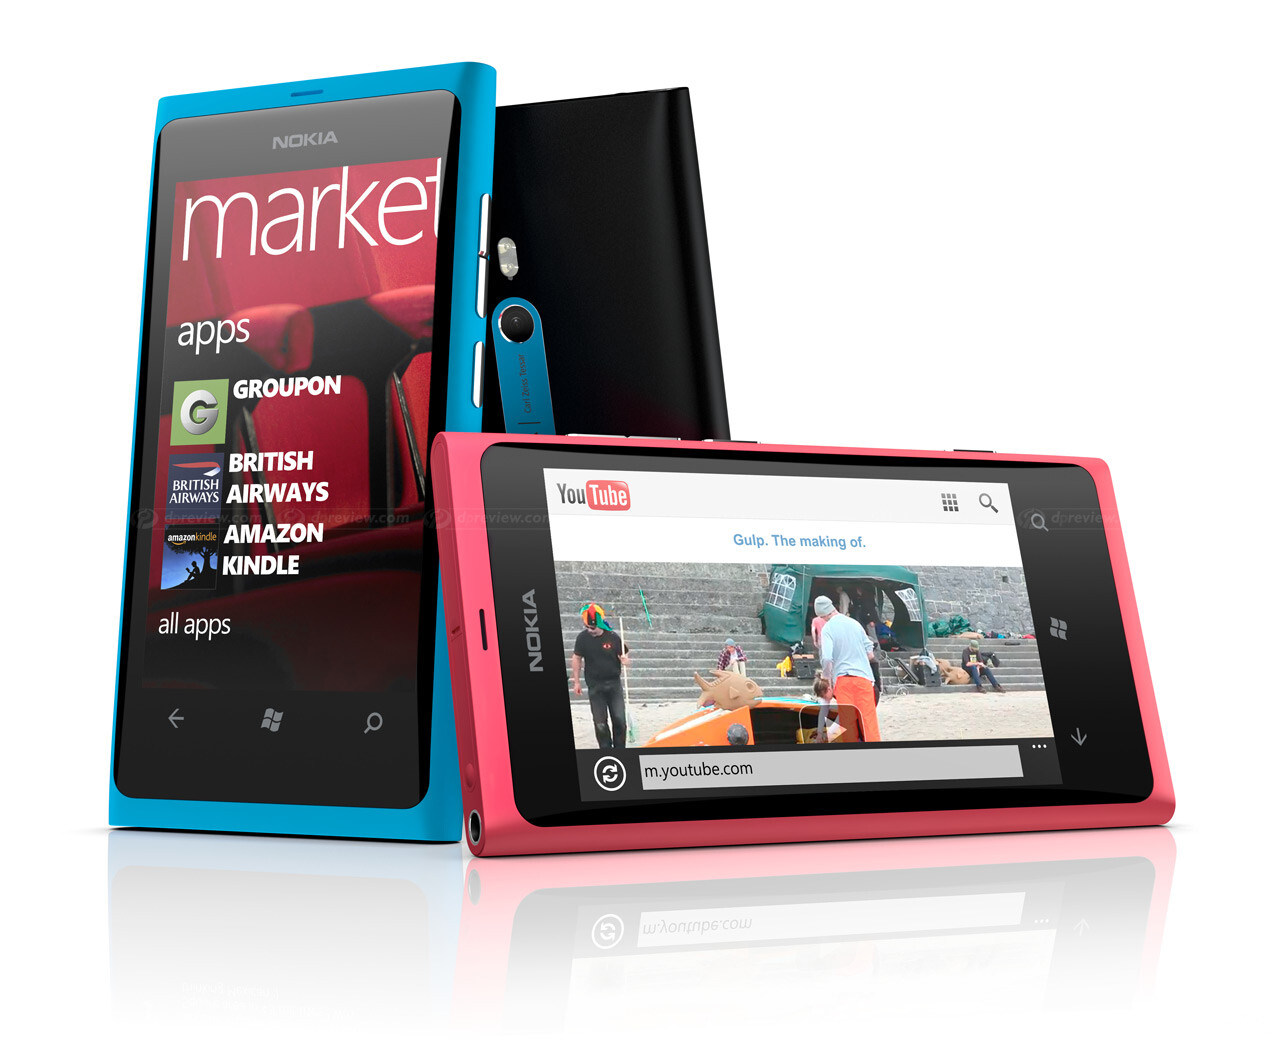 windows phone 7 8 rolling out to overseas nokia lumia 800 models now